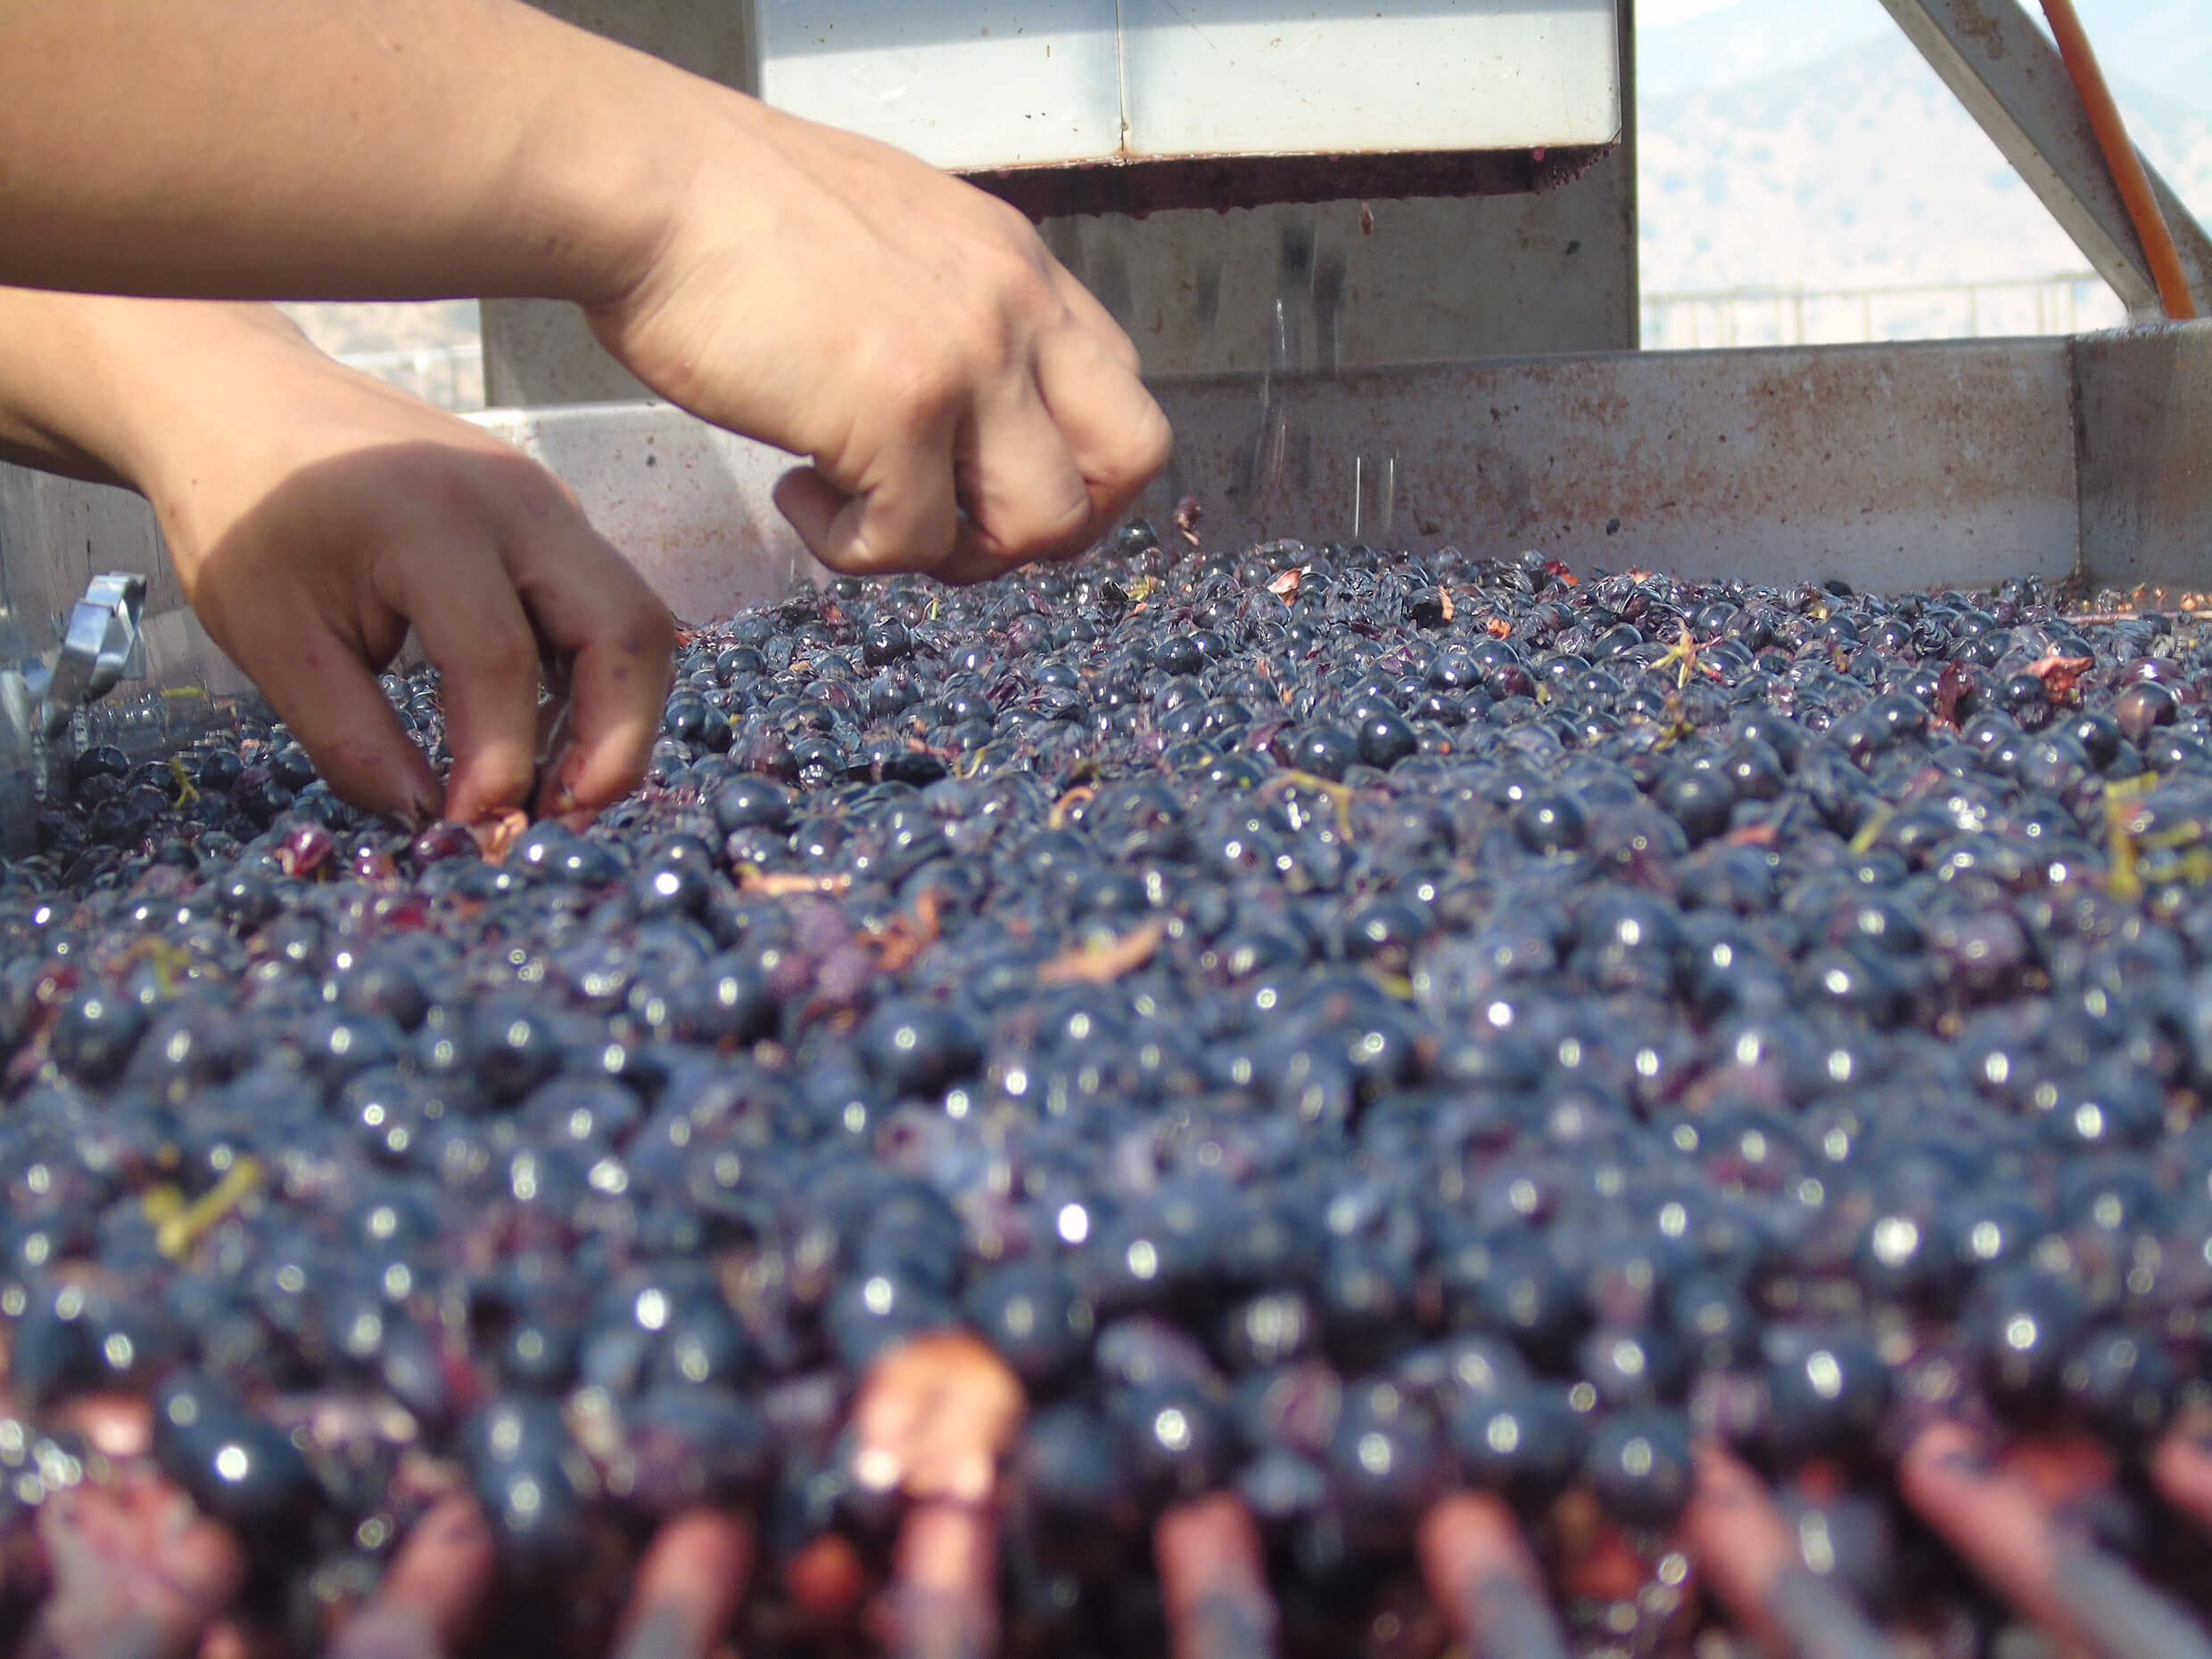 Hand checking red grapes on a conveyor at the winery